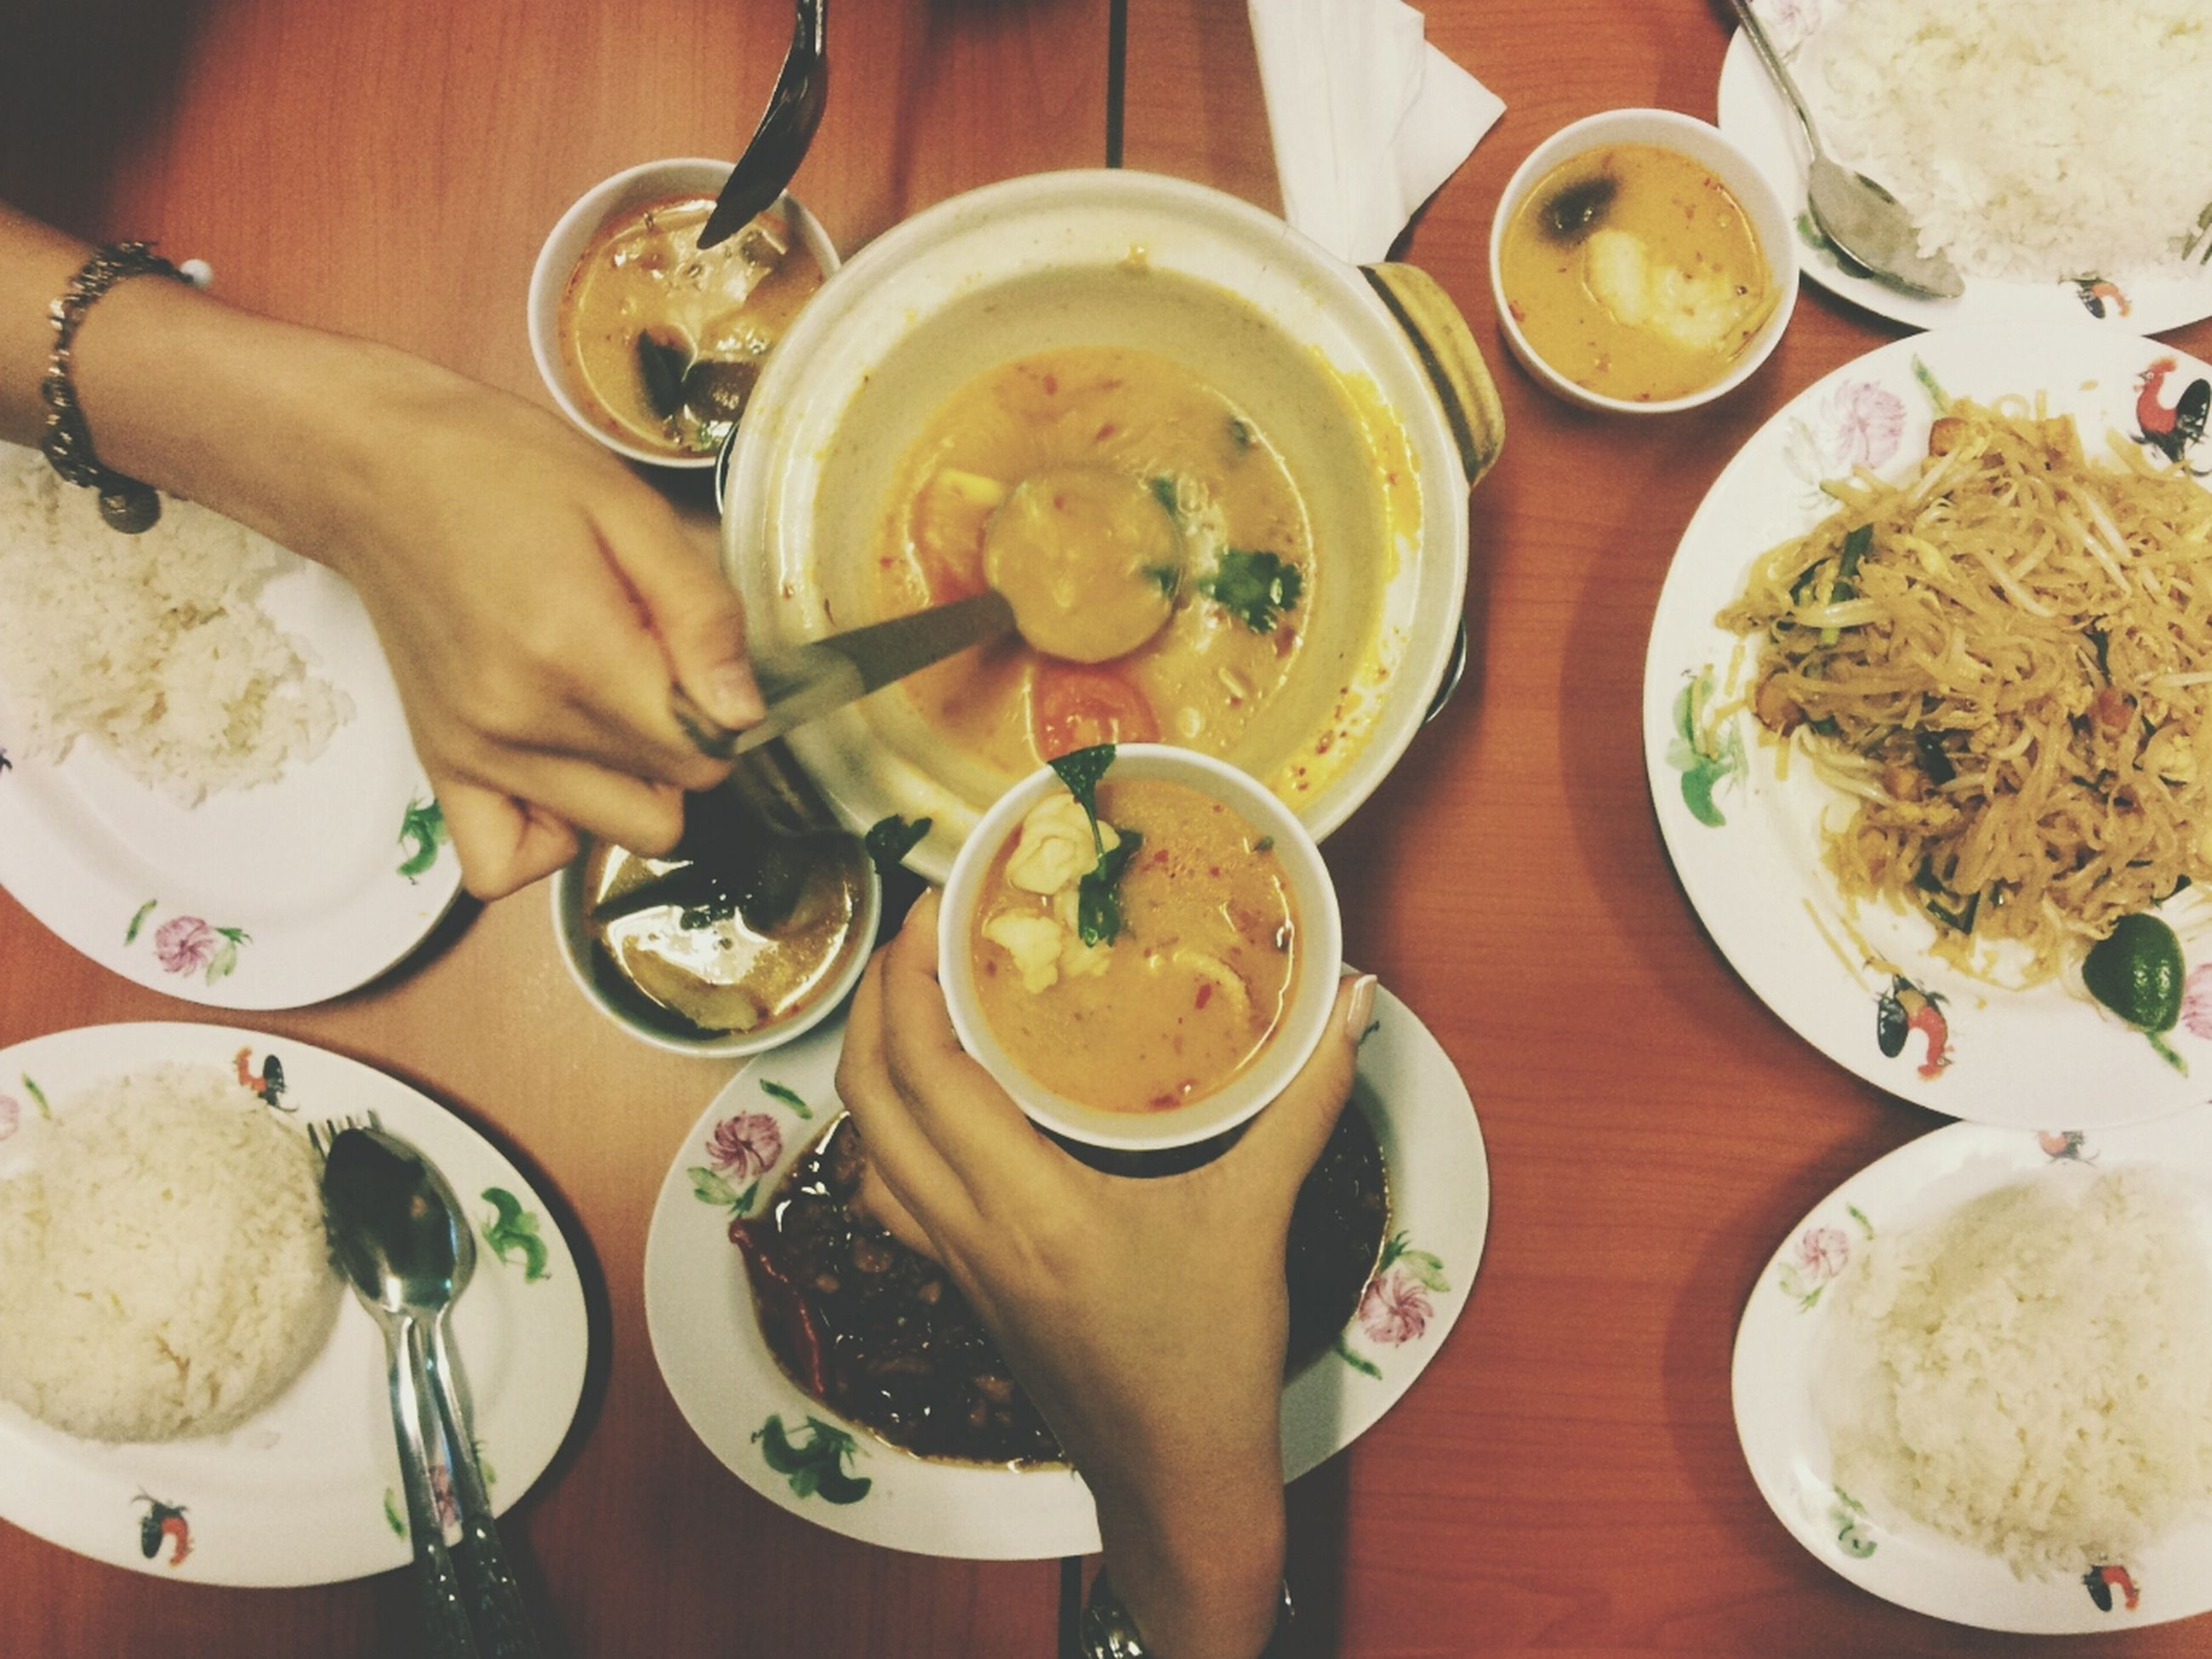 food and drink, freshness, indoors, food, table, drink, person, spoon, plate, ready-to-eat, refreshment, healthy eating, bowl, holding, high angle view, part of, coffee cup